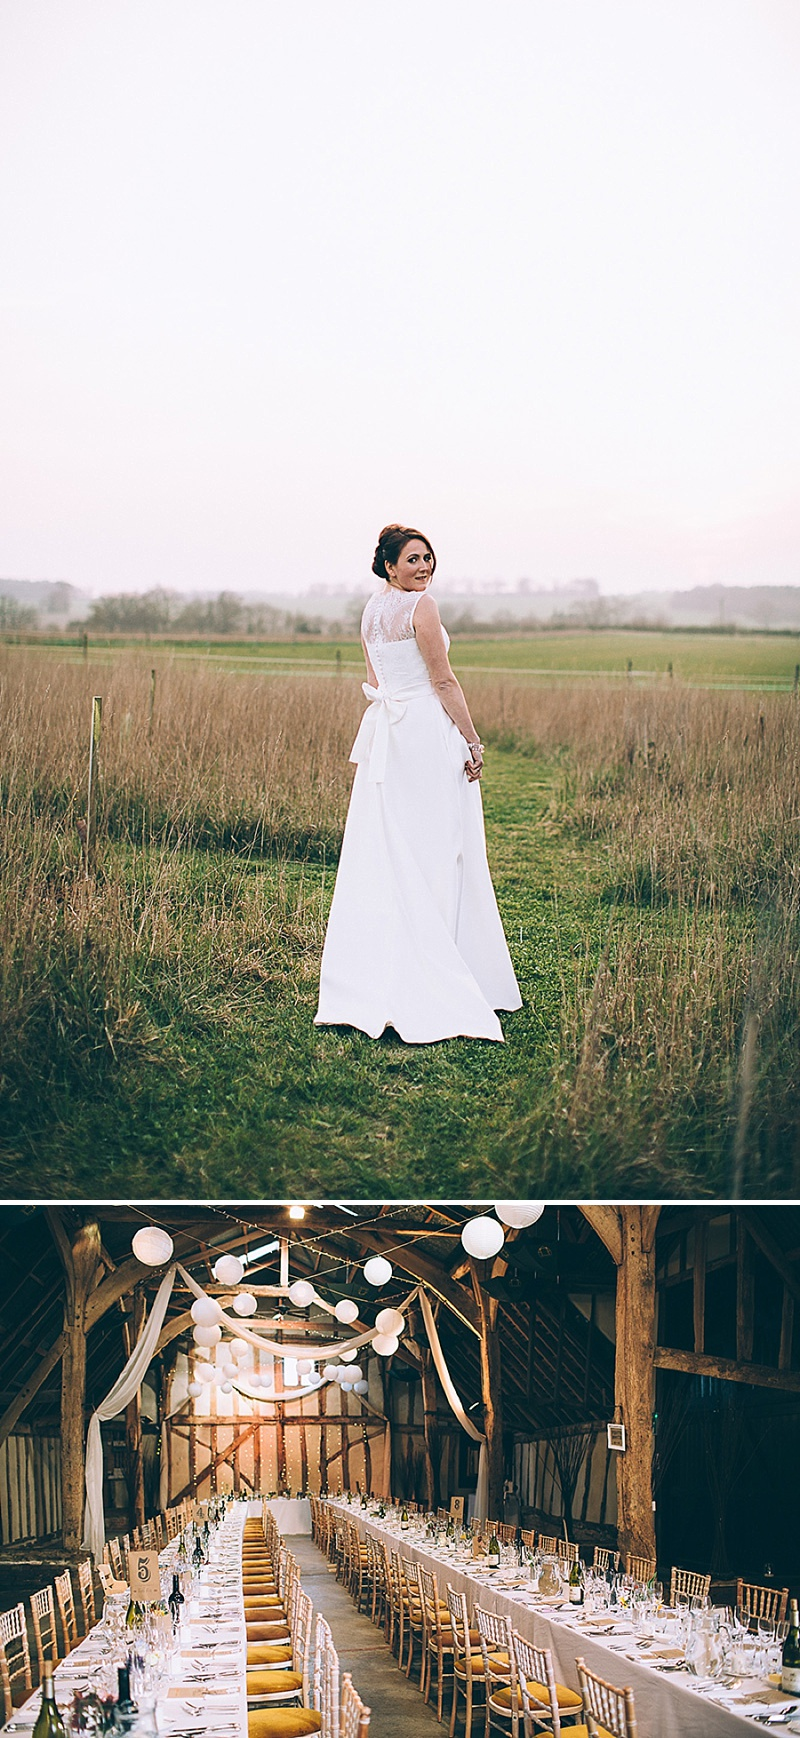 A wedding at Alpheton Hall Barns in Suffolk with a Jesus Peiro ballgown dress navy bridesmaids and DIY 0150 Sophistication In Suffolk.